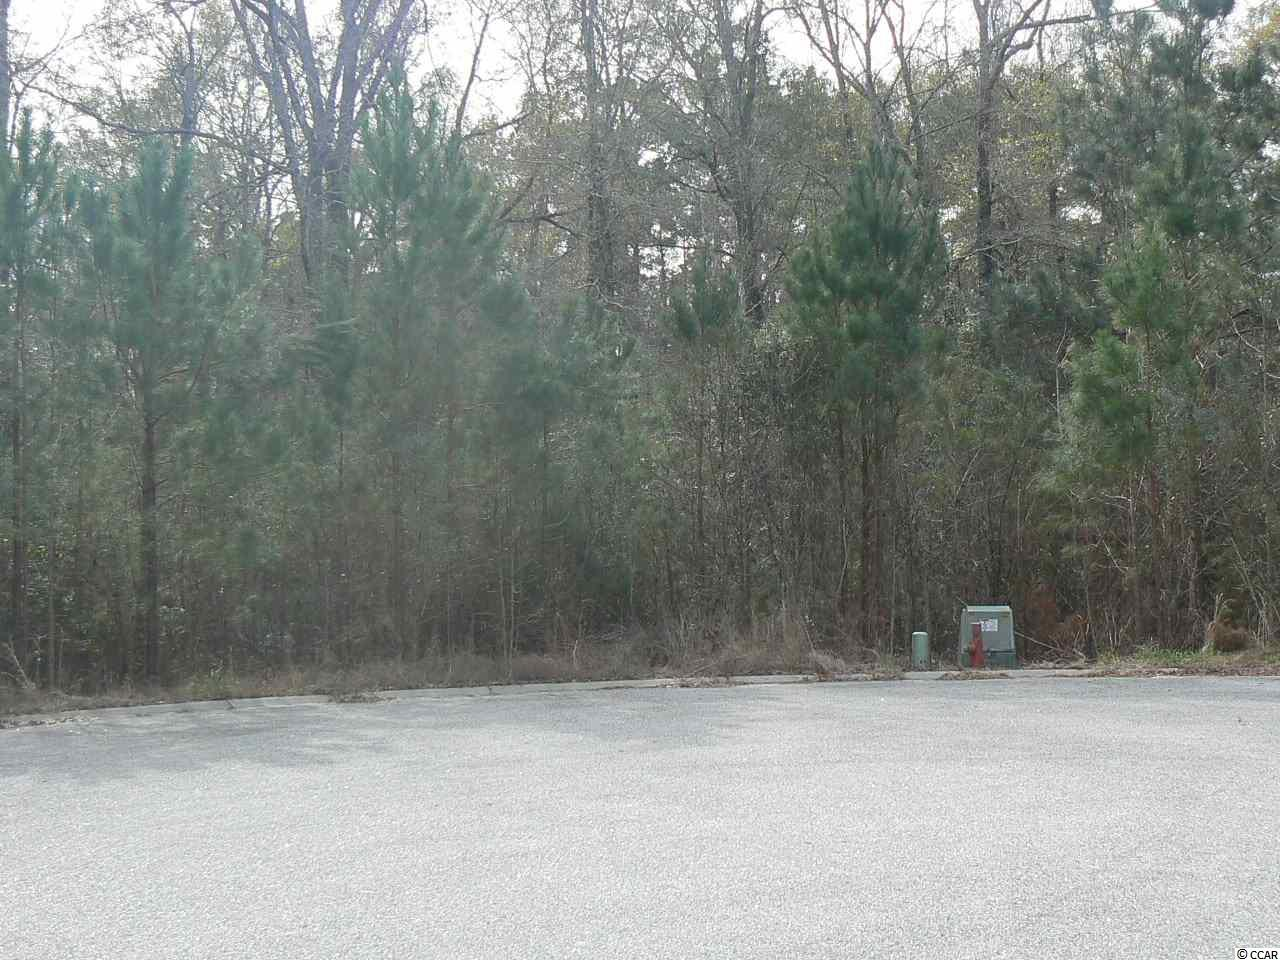 If you are tired of sharing walls with your neighbors or strict HOAs? Then this is the lot for you! This massive lot is over 1.5 acres and ready for your dream home. Walk to the rear of your spacious lot and enjoy peaceful Socastee Creek or drive just a couple of minutes to dining, shopping, airport, and Highways 31,544, and 501. Buy now, build later, bring your own builder or the seller can build your dream home.